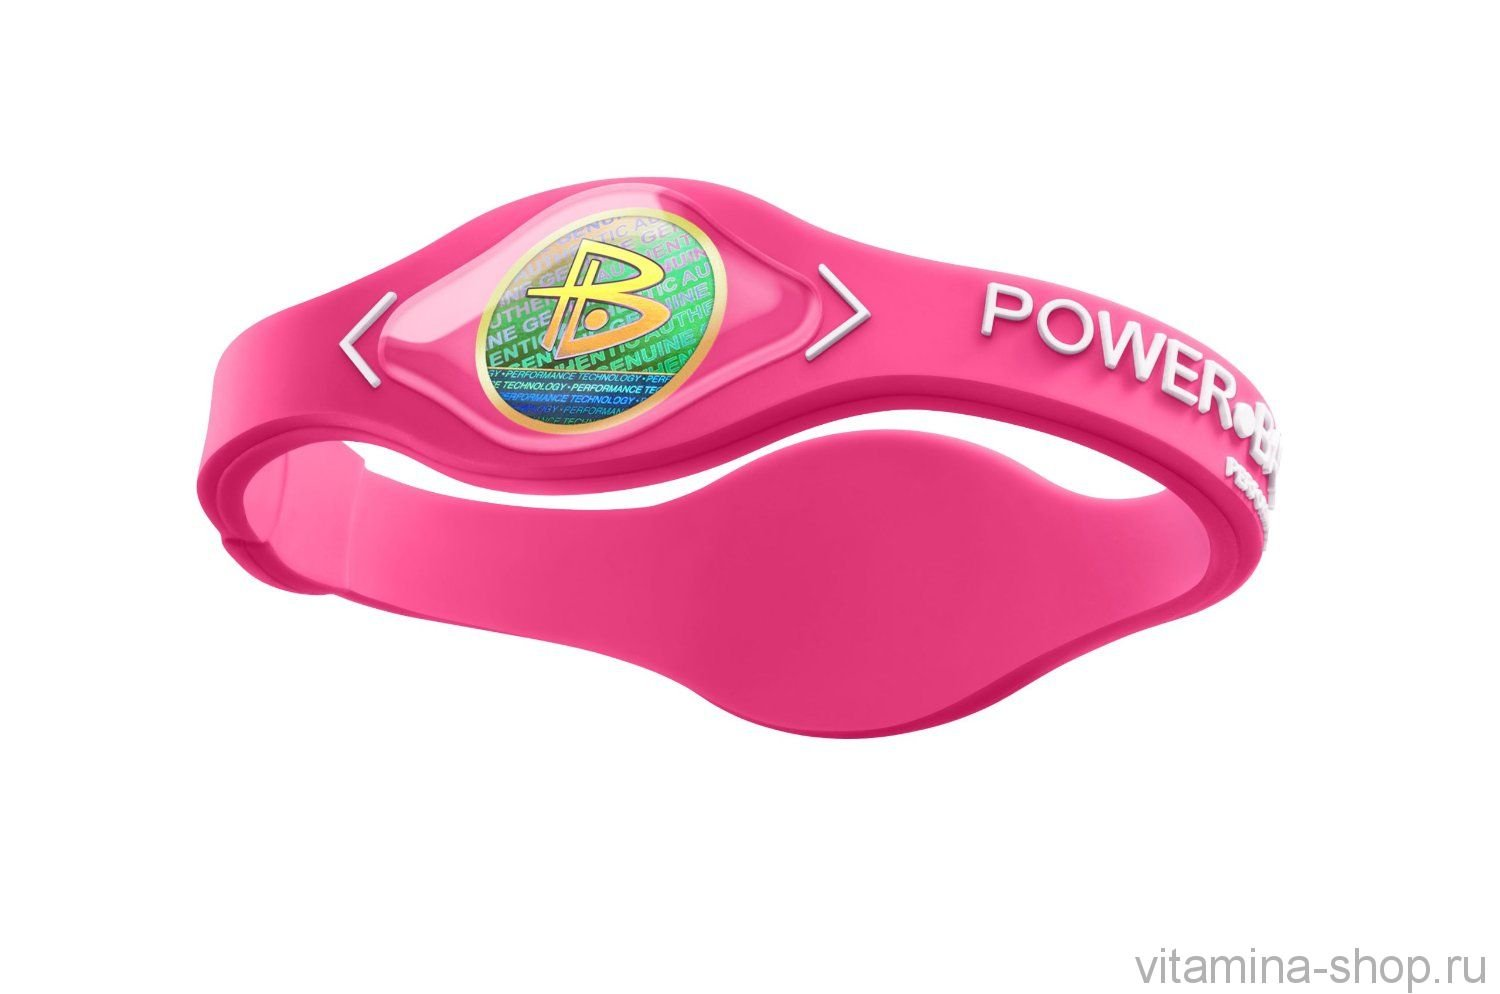 79d5c5dd5ae0f Power Balance Silicone Wristband Bracelet with Holograms to Improve Energy  and Body Balance in Sports